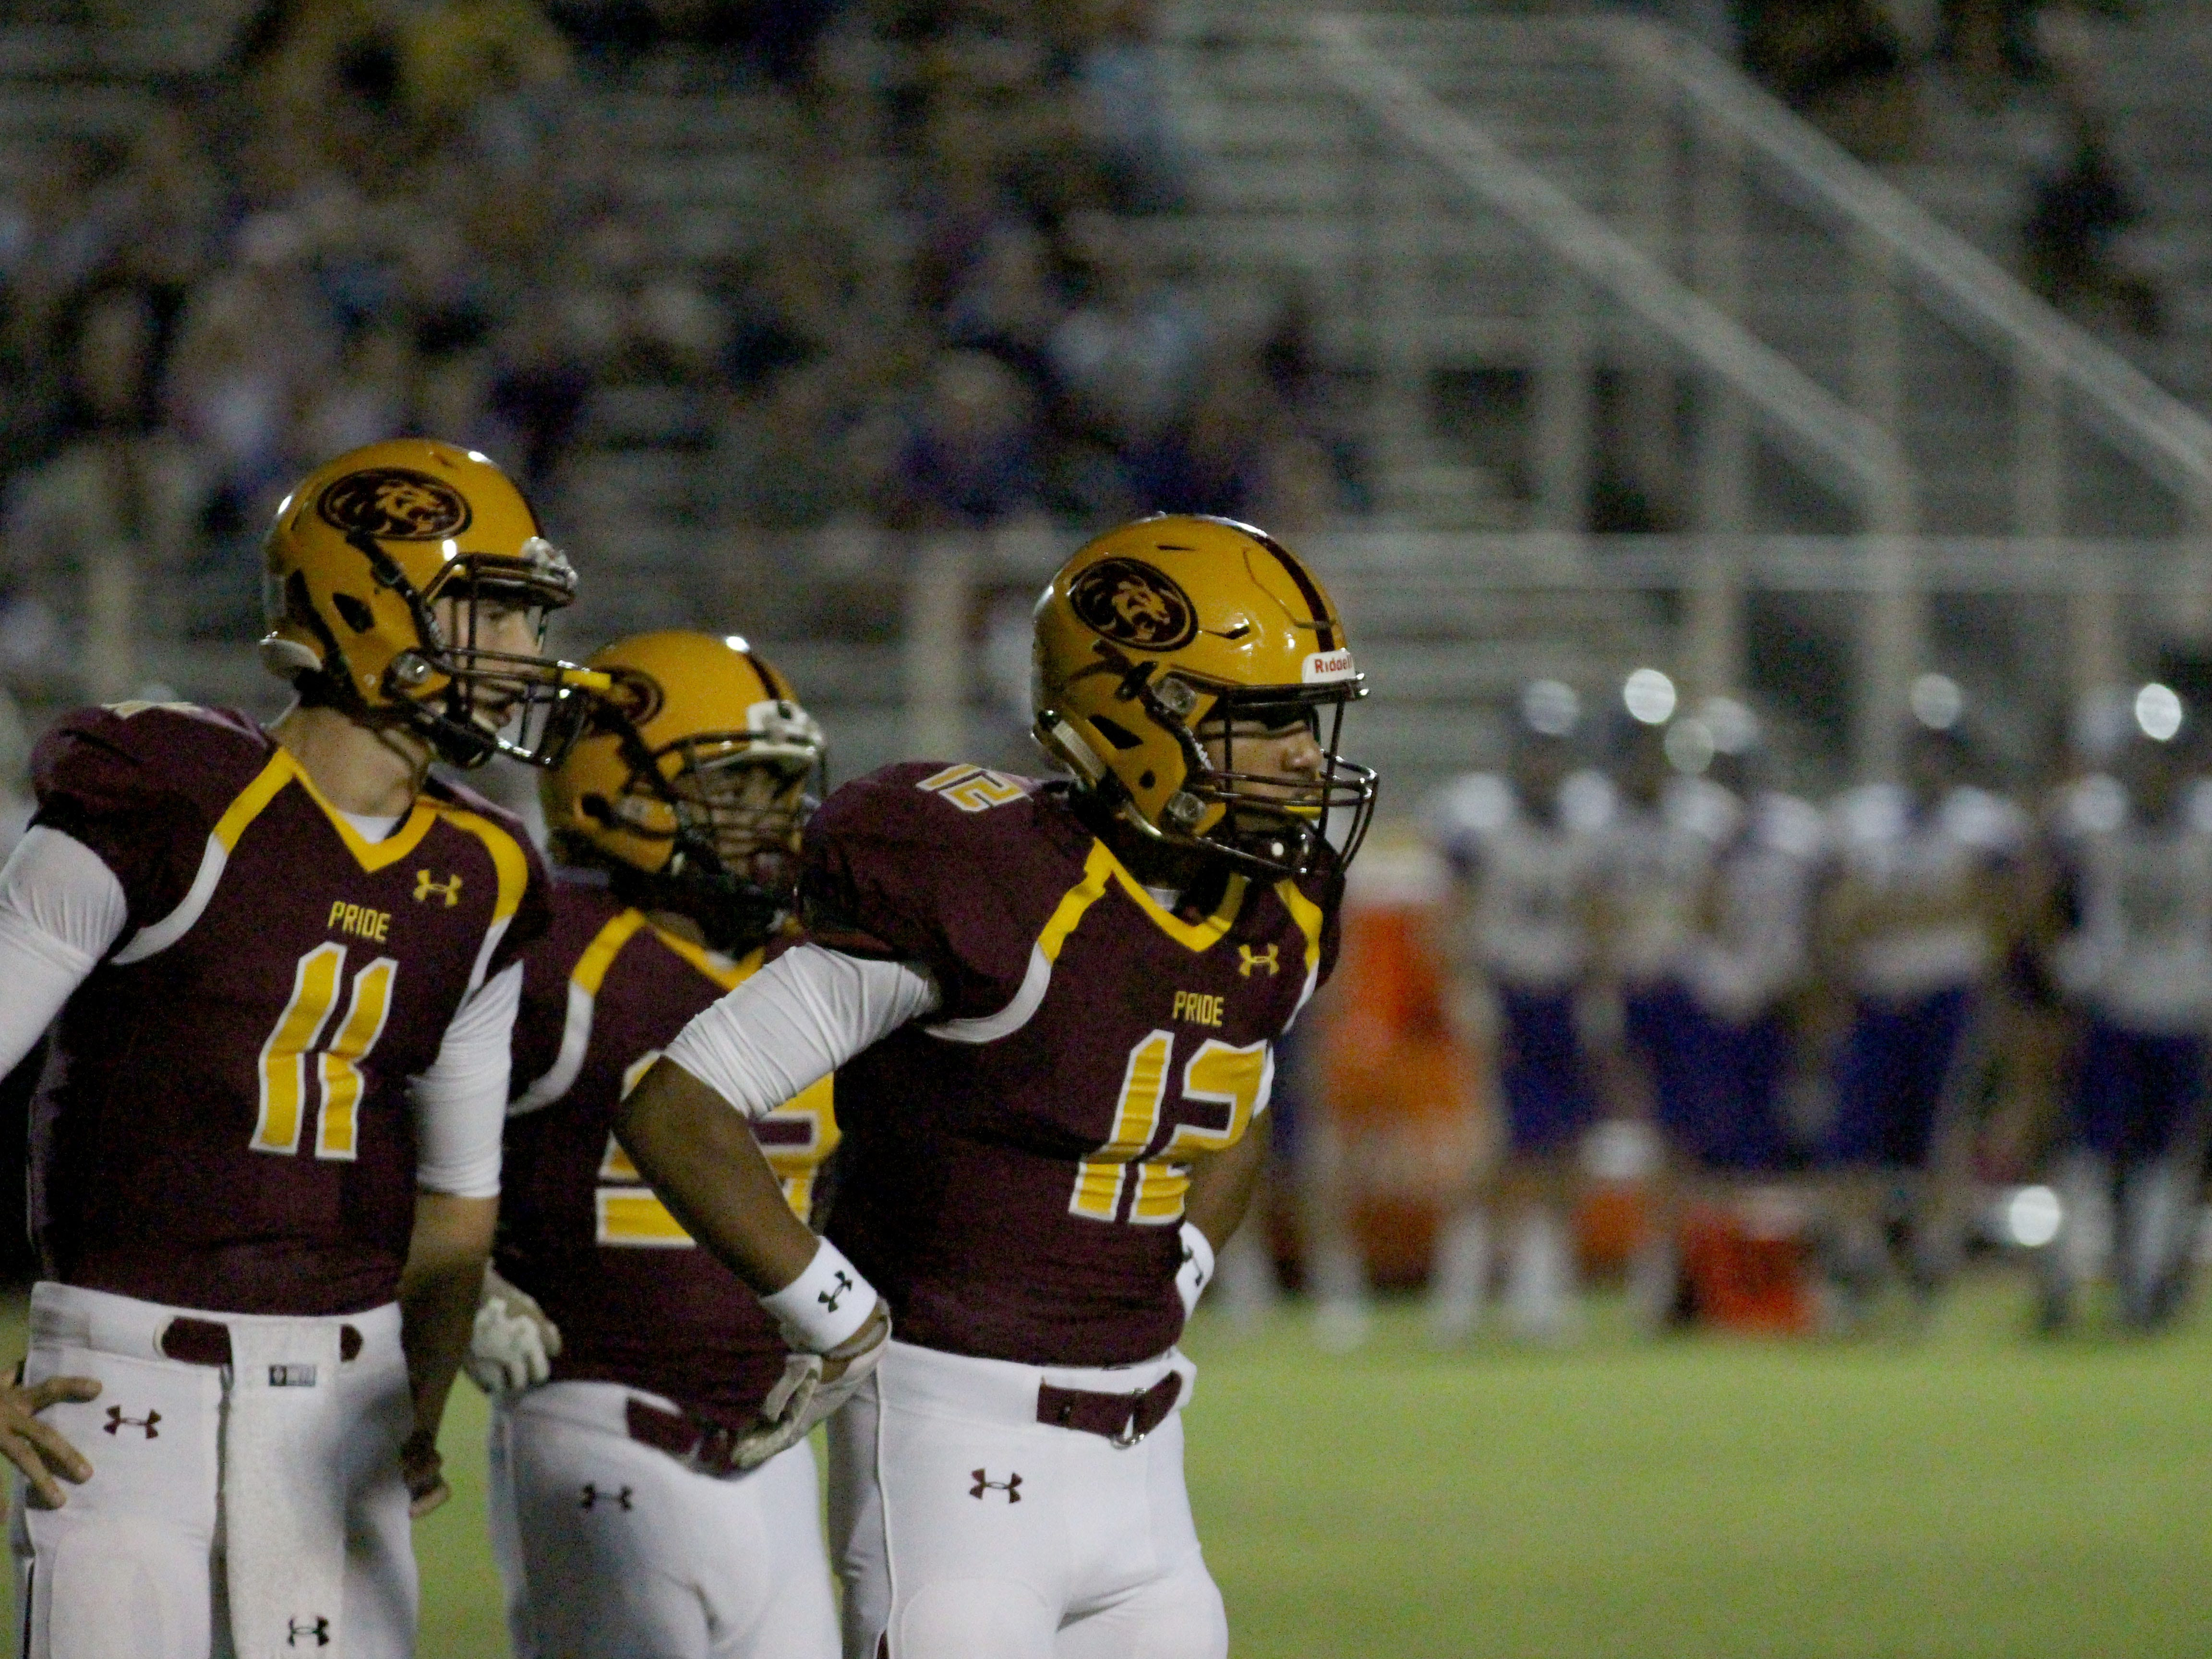 Mountain Pointe players look to sideline in game against Queen Creek on Friday night at Mountain Pointe High School on Sept. 21, 2018.